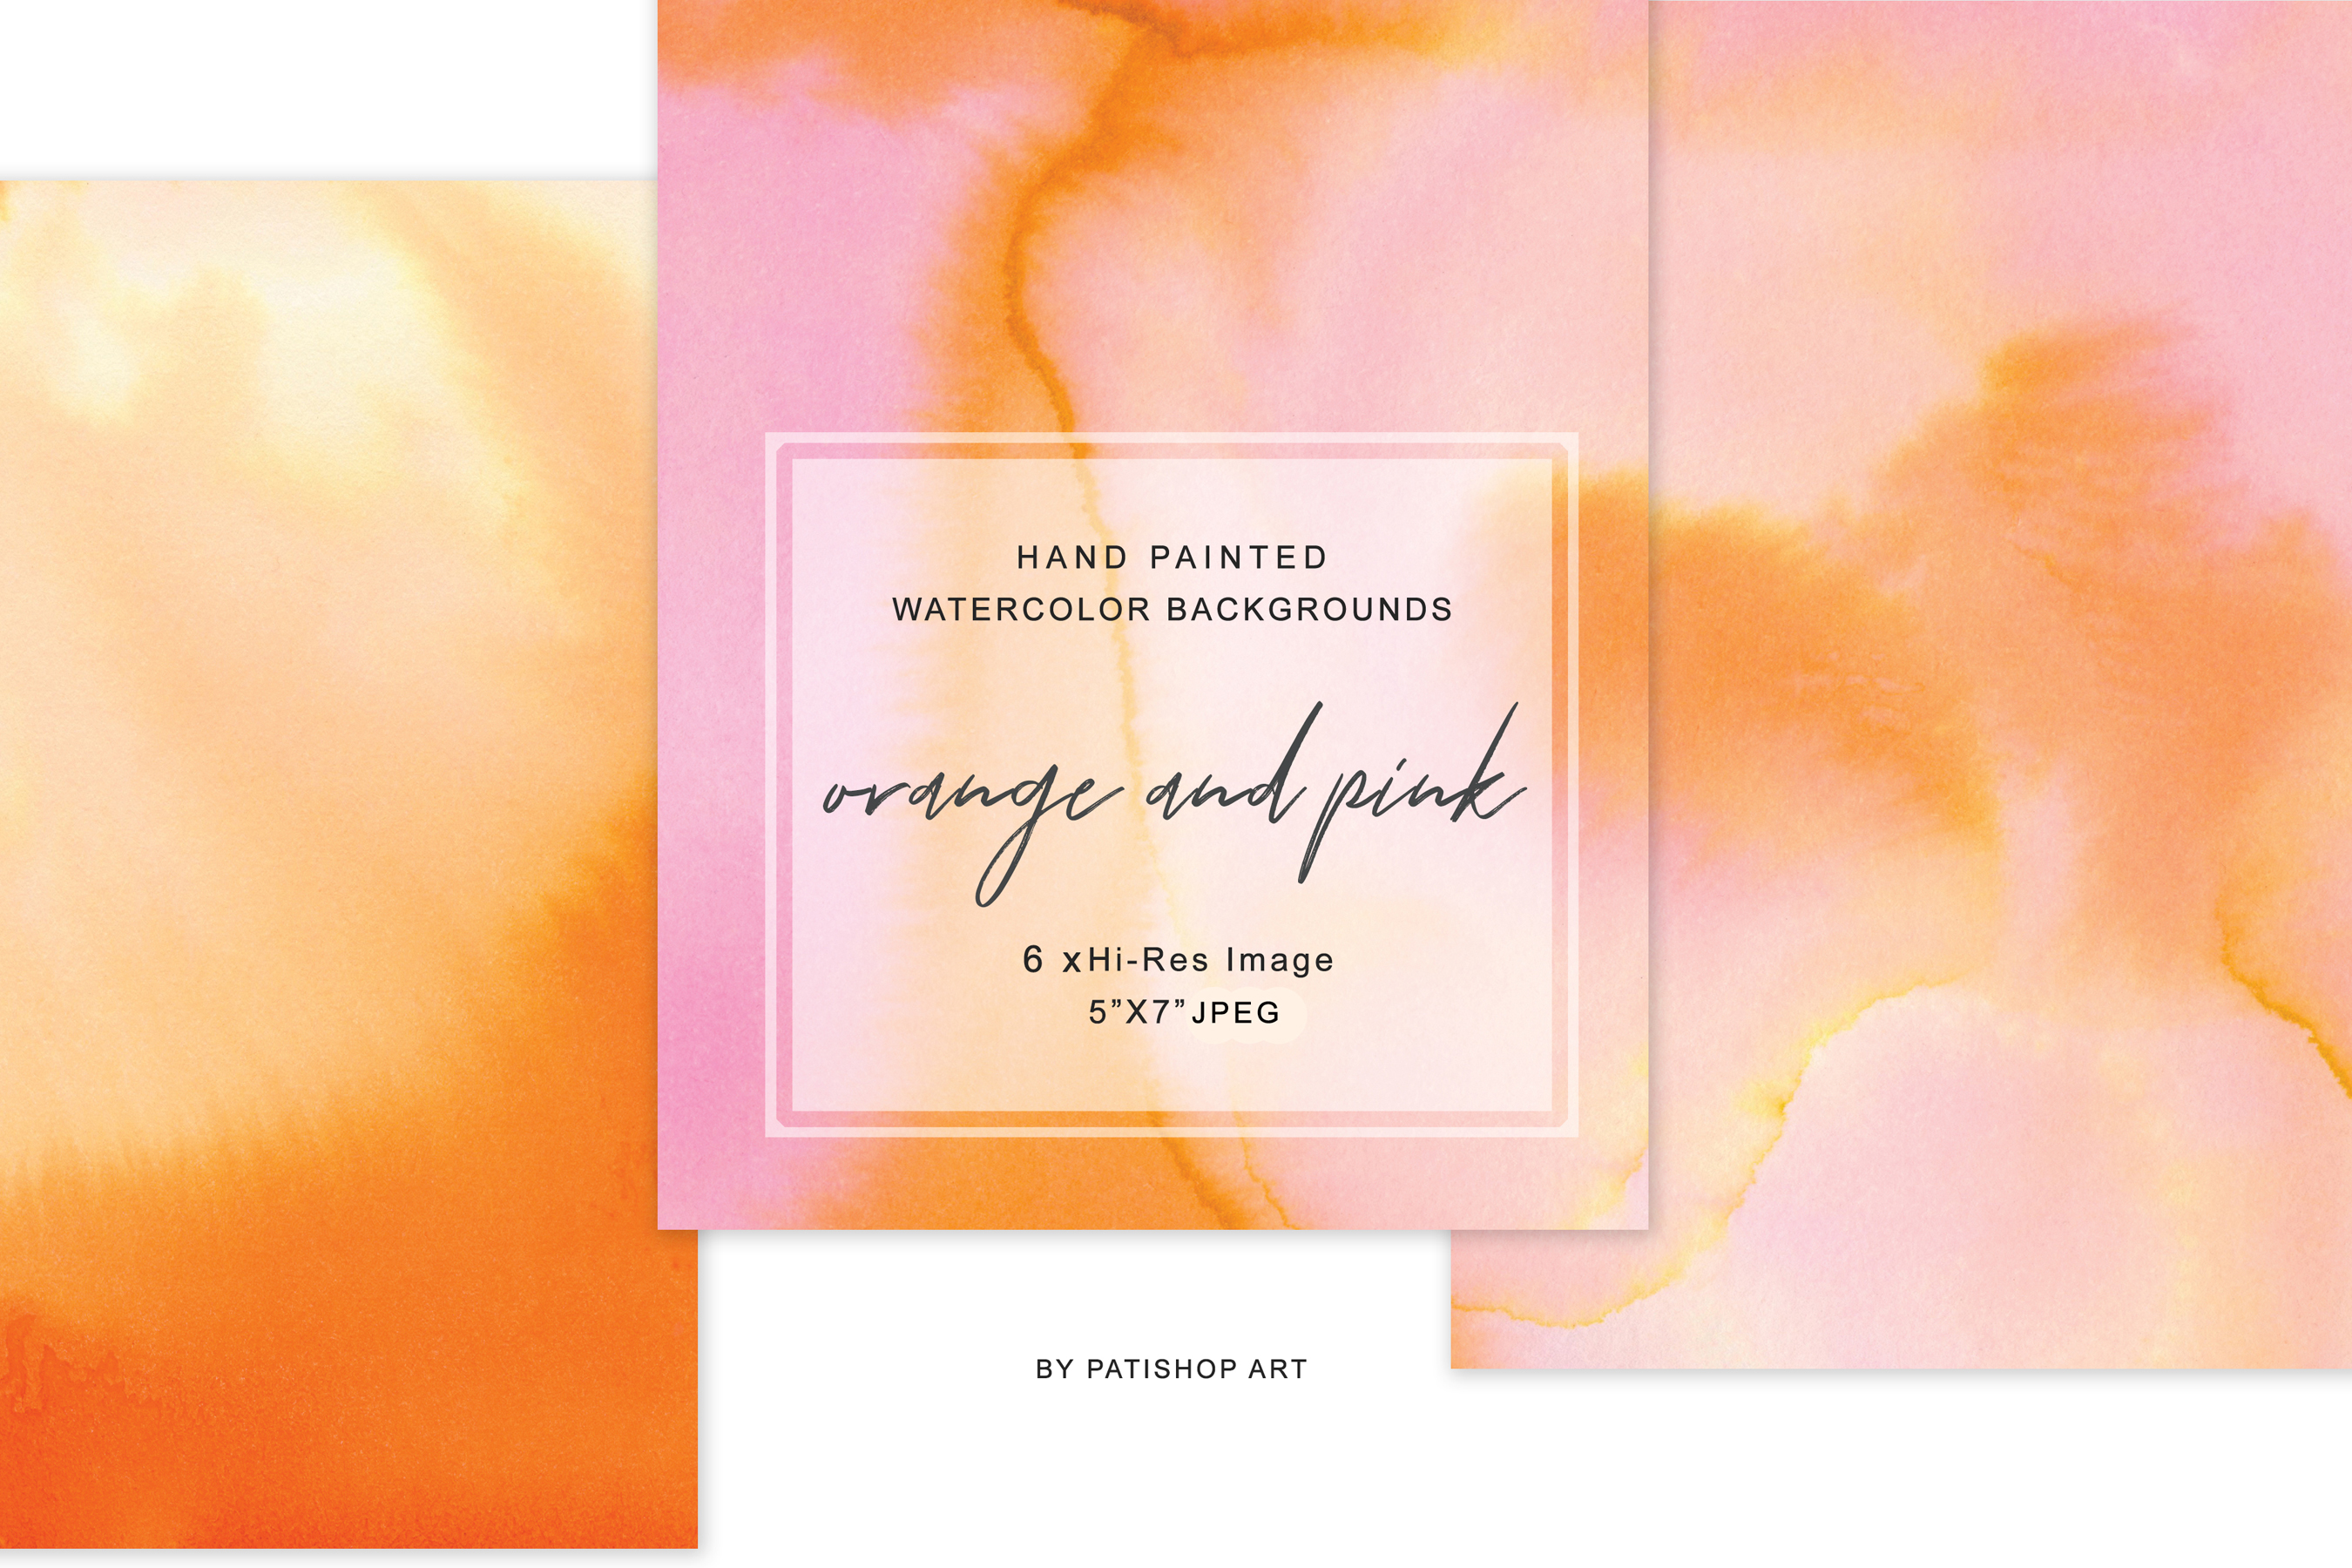 Hand Painted Watercolor Background Orange & Pink 5x7 example image 5